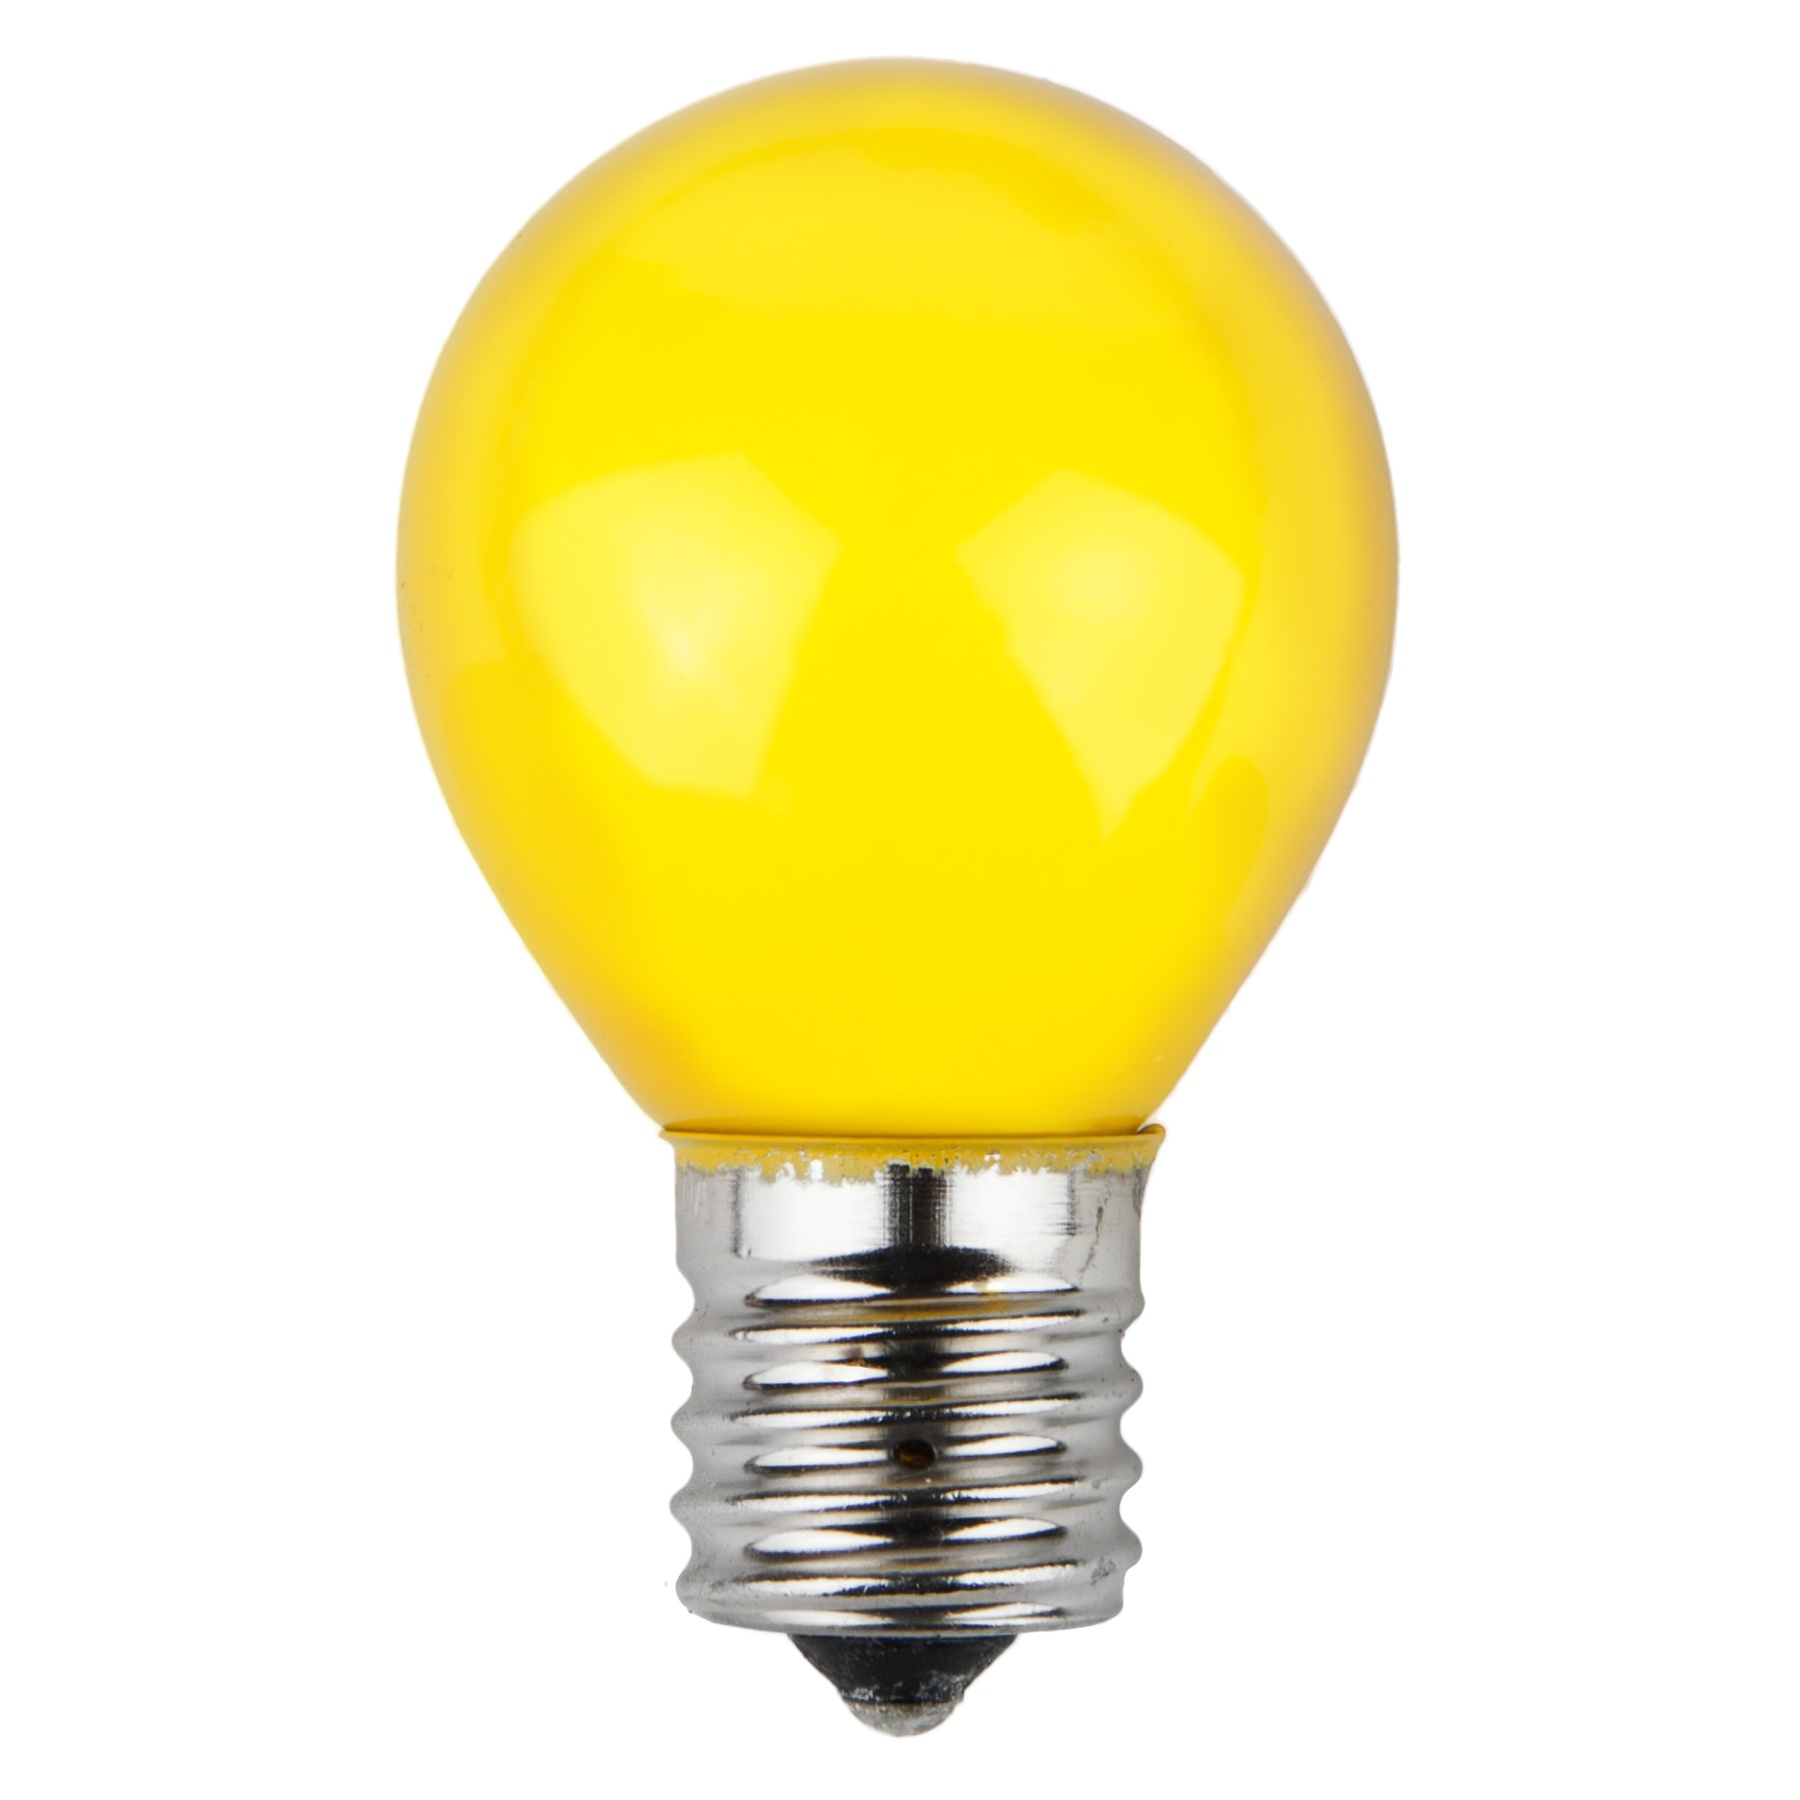 E17 Patio And Party Light Bulbs S11 Opaque Yellow 10 Watt Replacement Bulbs